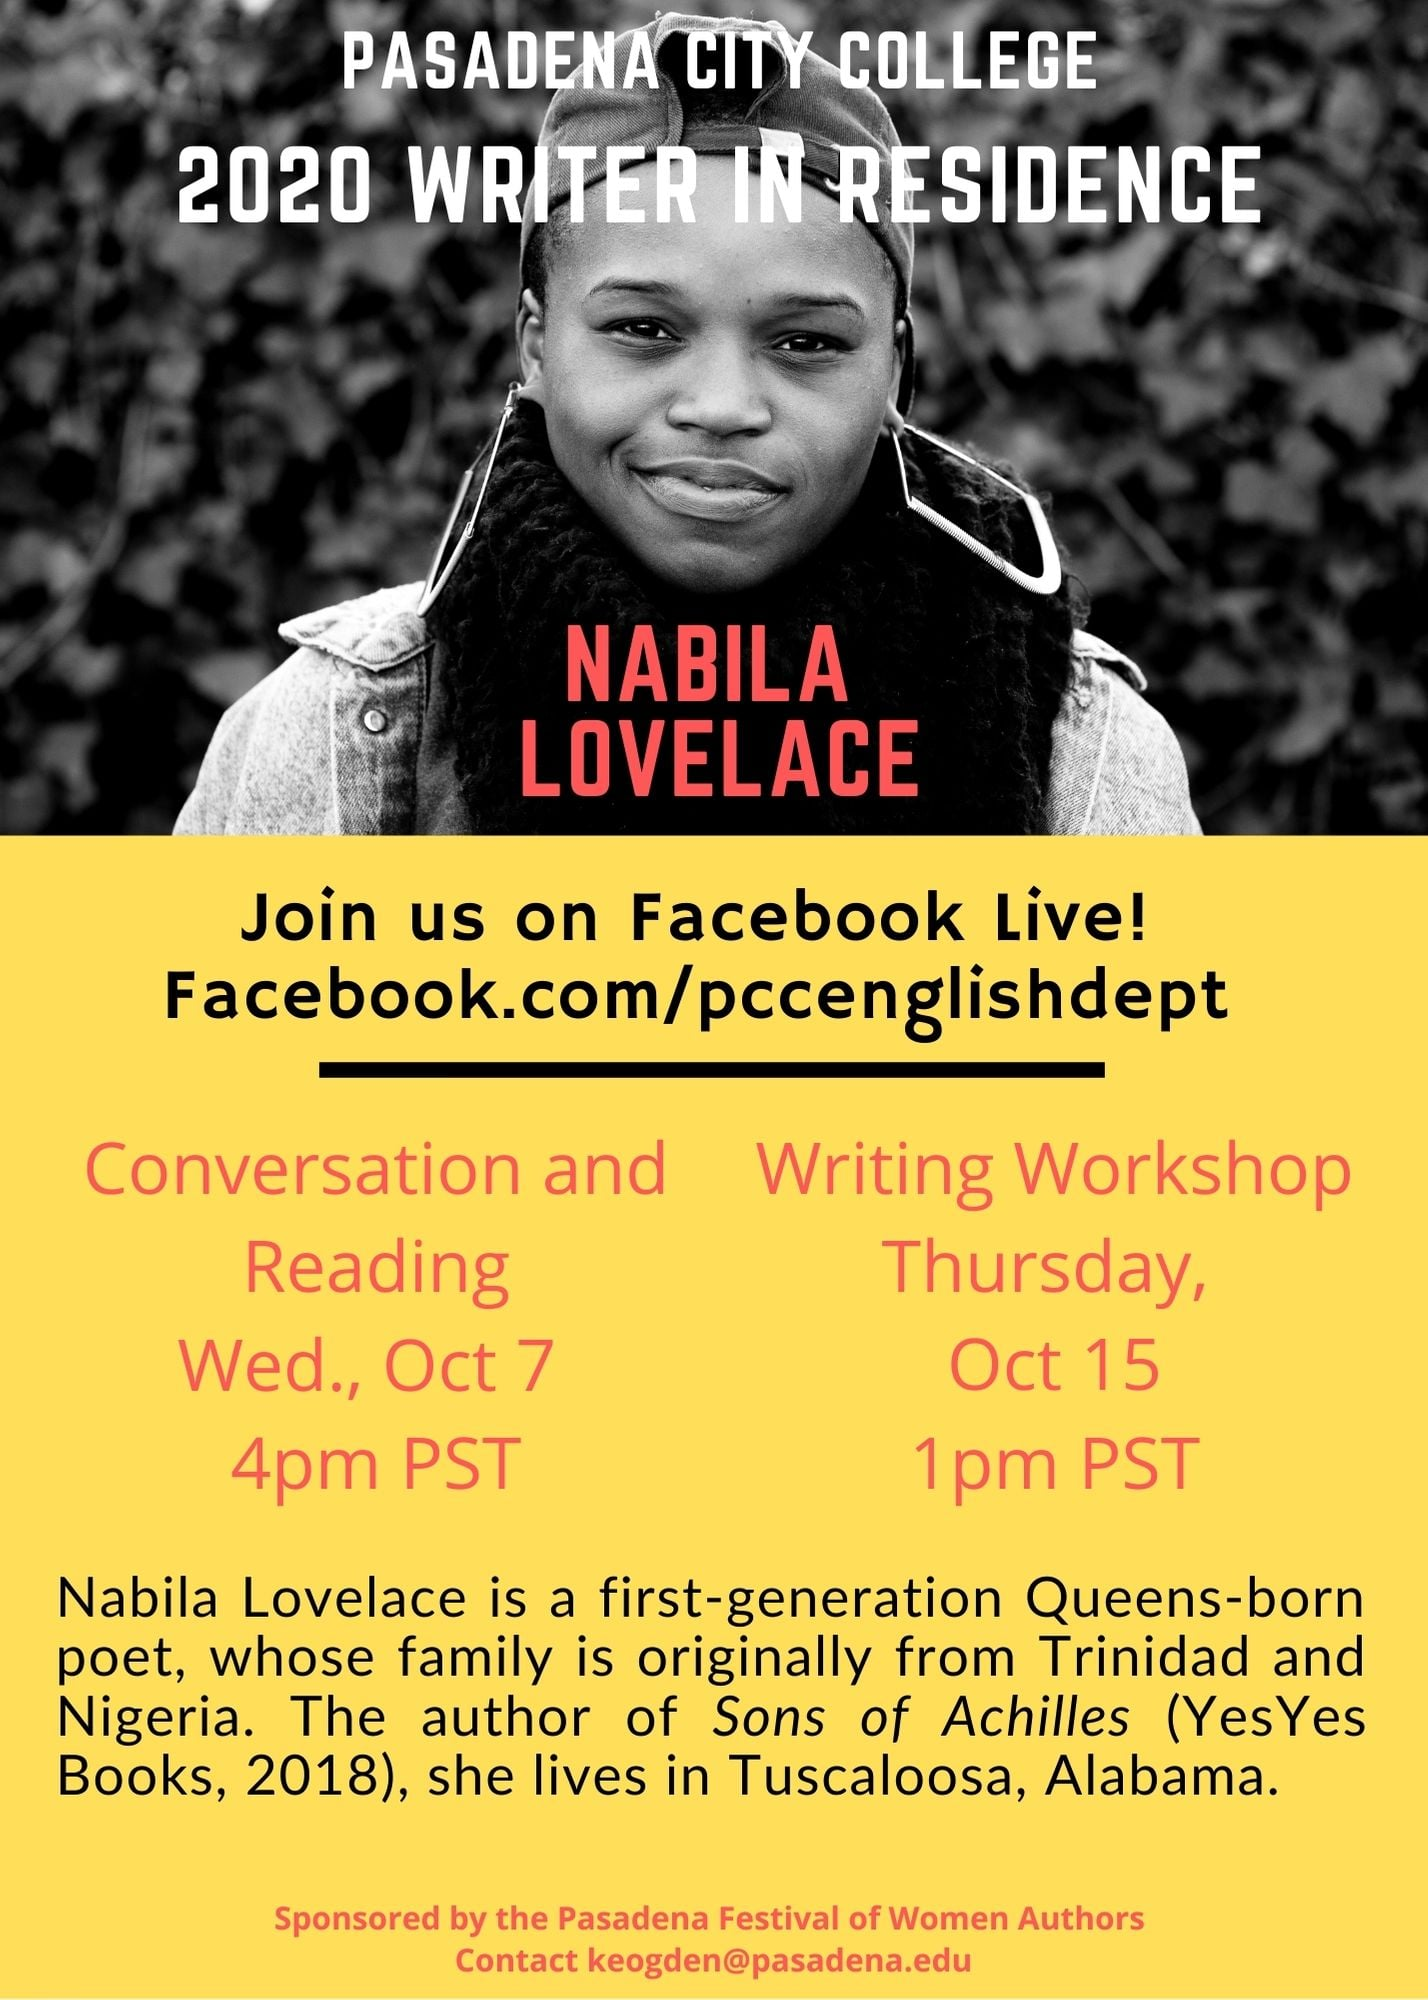 Nabila Lovelace flyer with portrait photo of author, dates and times of past author events and biographical description Nabila Lovelace is a first-generation Queens-born poet whose family is originally from Trinidad and Nigeria. The author of Sons of Achilles (YesYes Books, 2018), she lives in Tuscaloosa, Alabama.